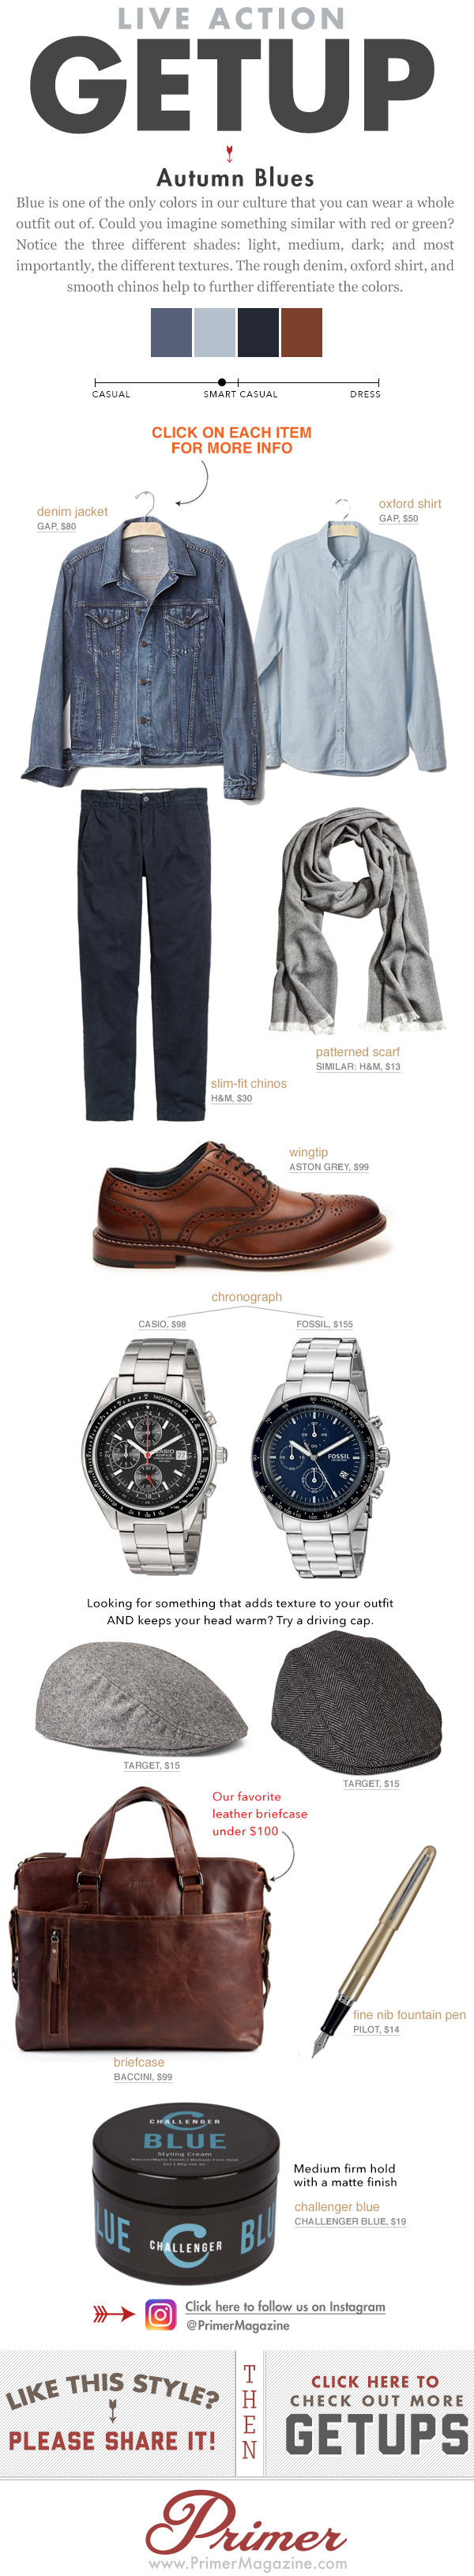 The Getup Autumn Blues outfit inspiration featuring denim jacket and wingtip shoes